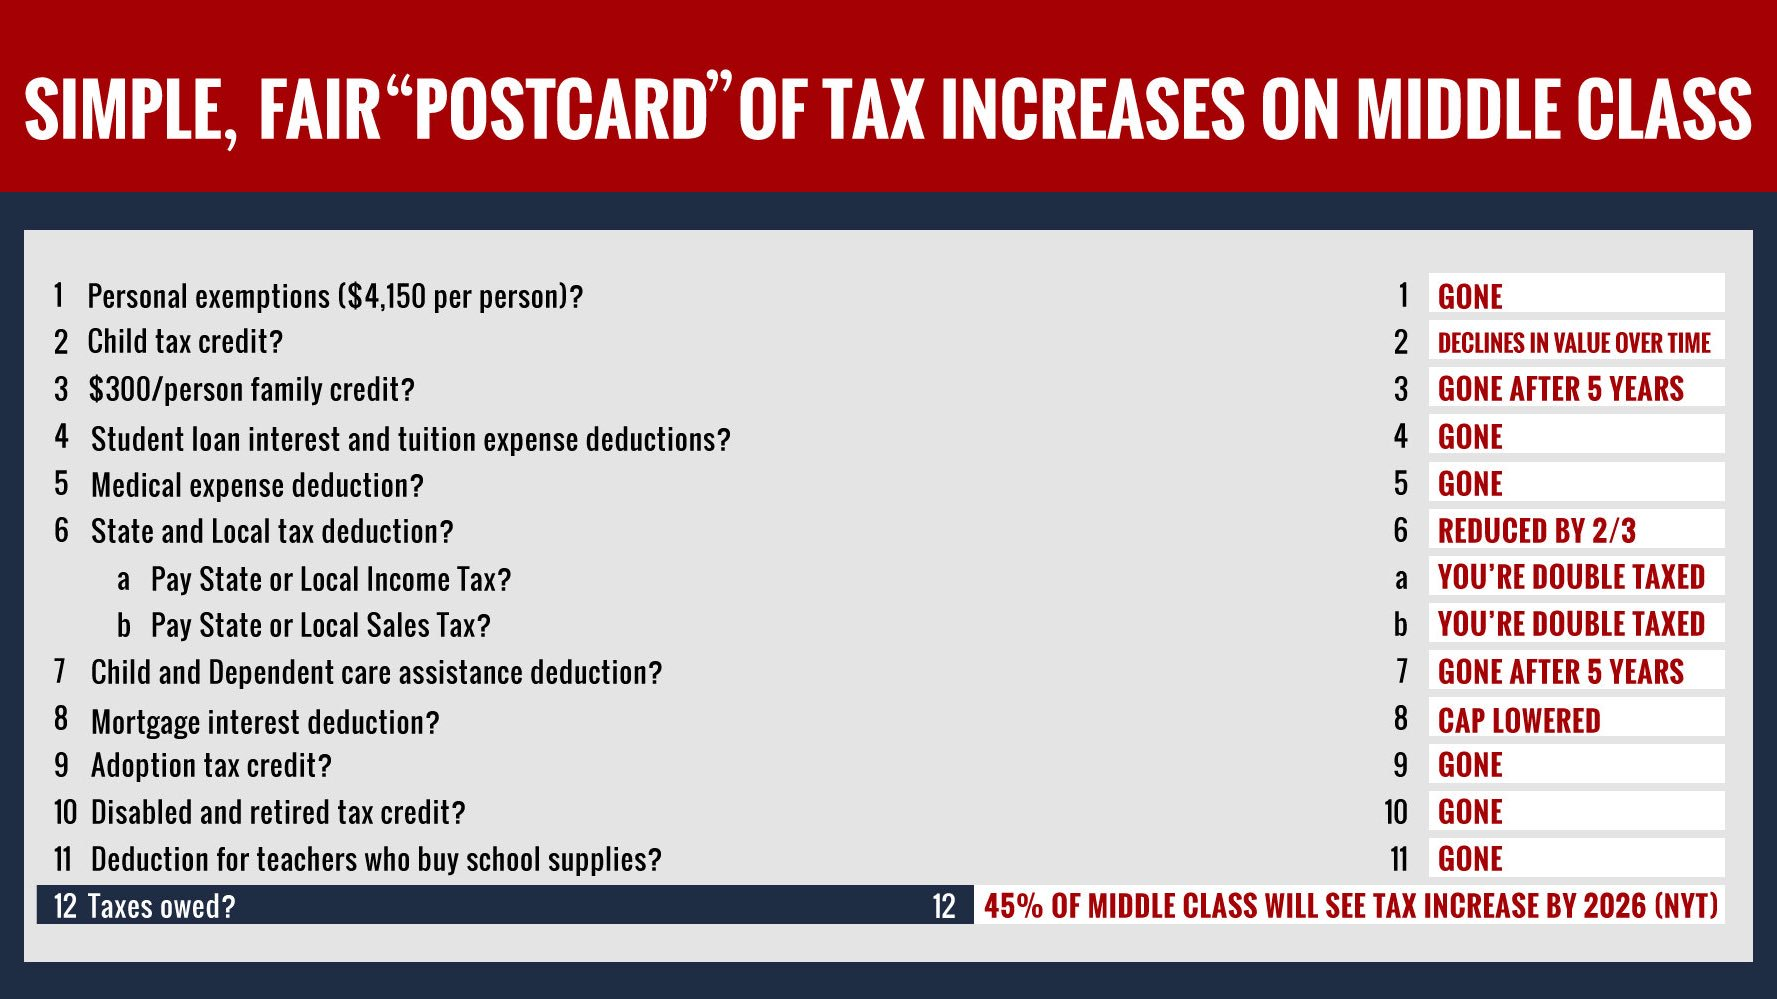 They can try to promise you can file your taxes on a postcard, but they can't keep saying you'll pay less in taxes. https://t.co/xutE882qL1